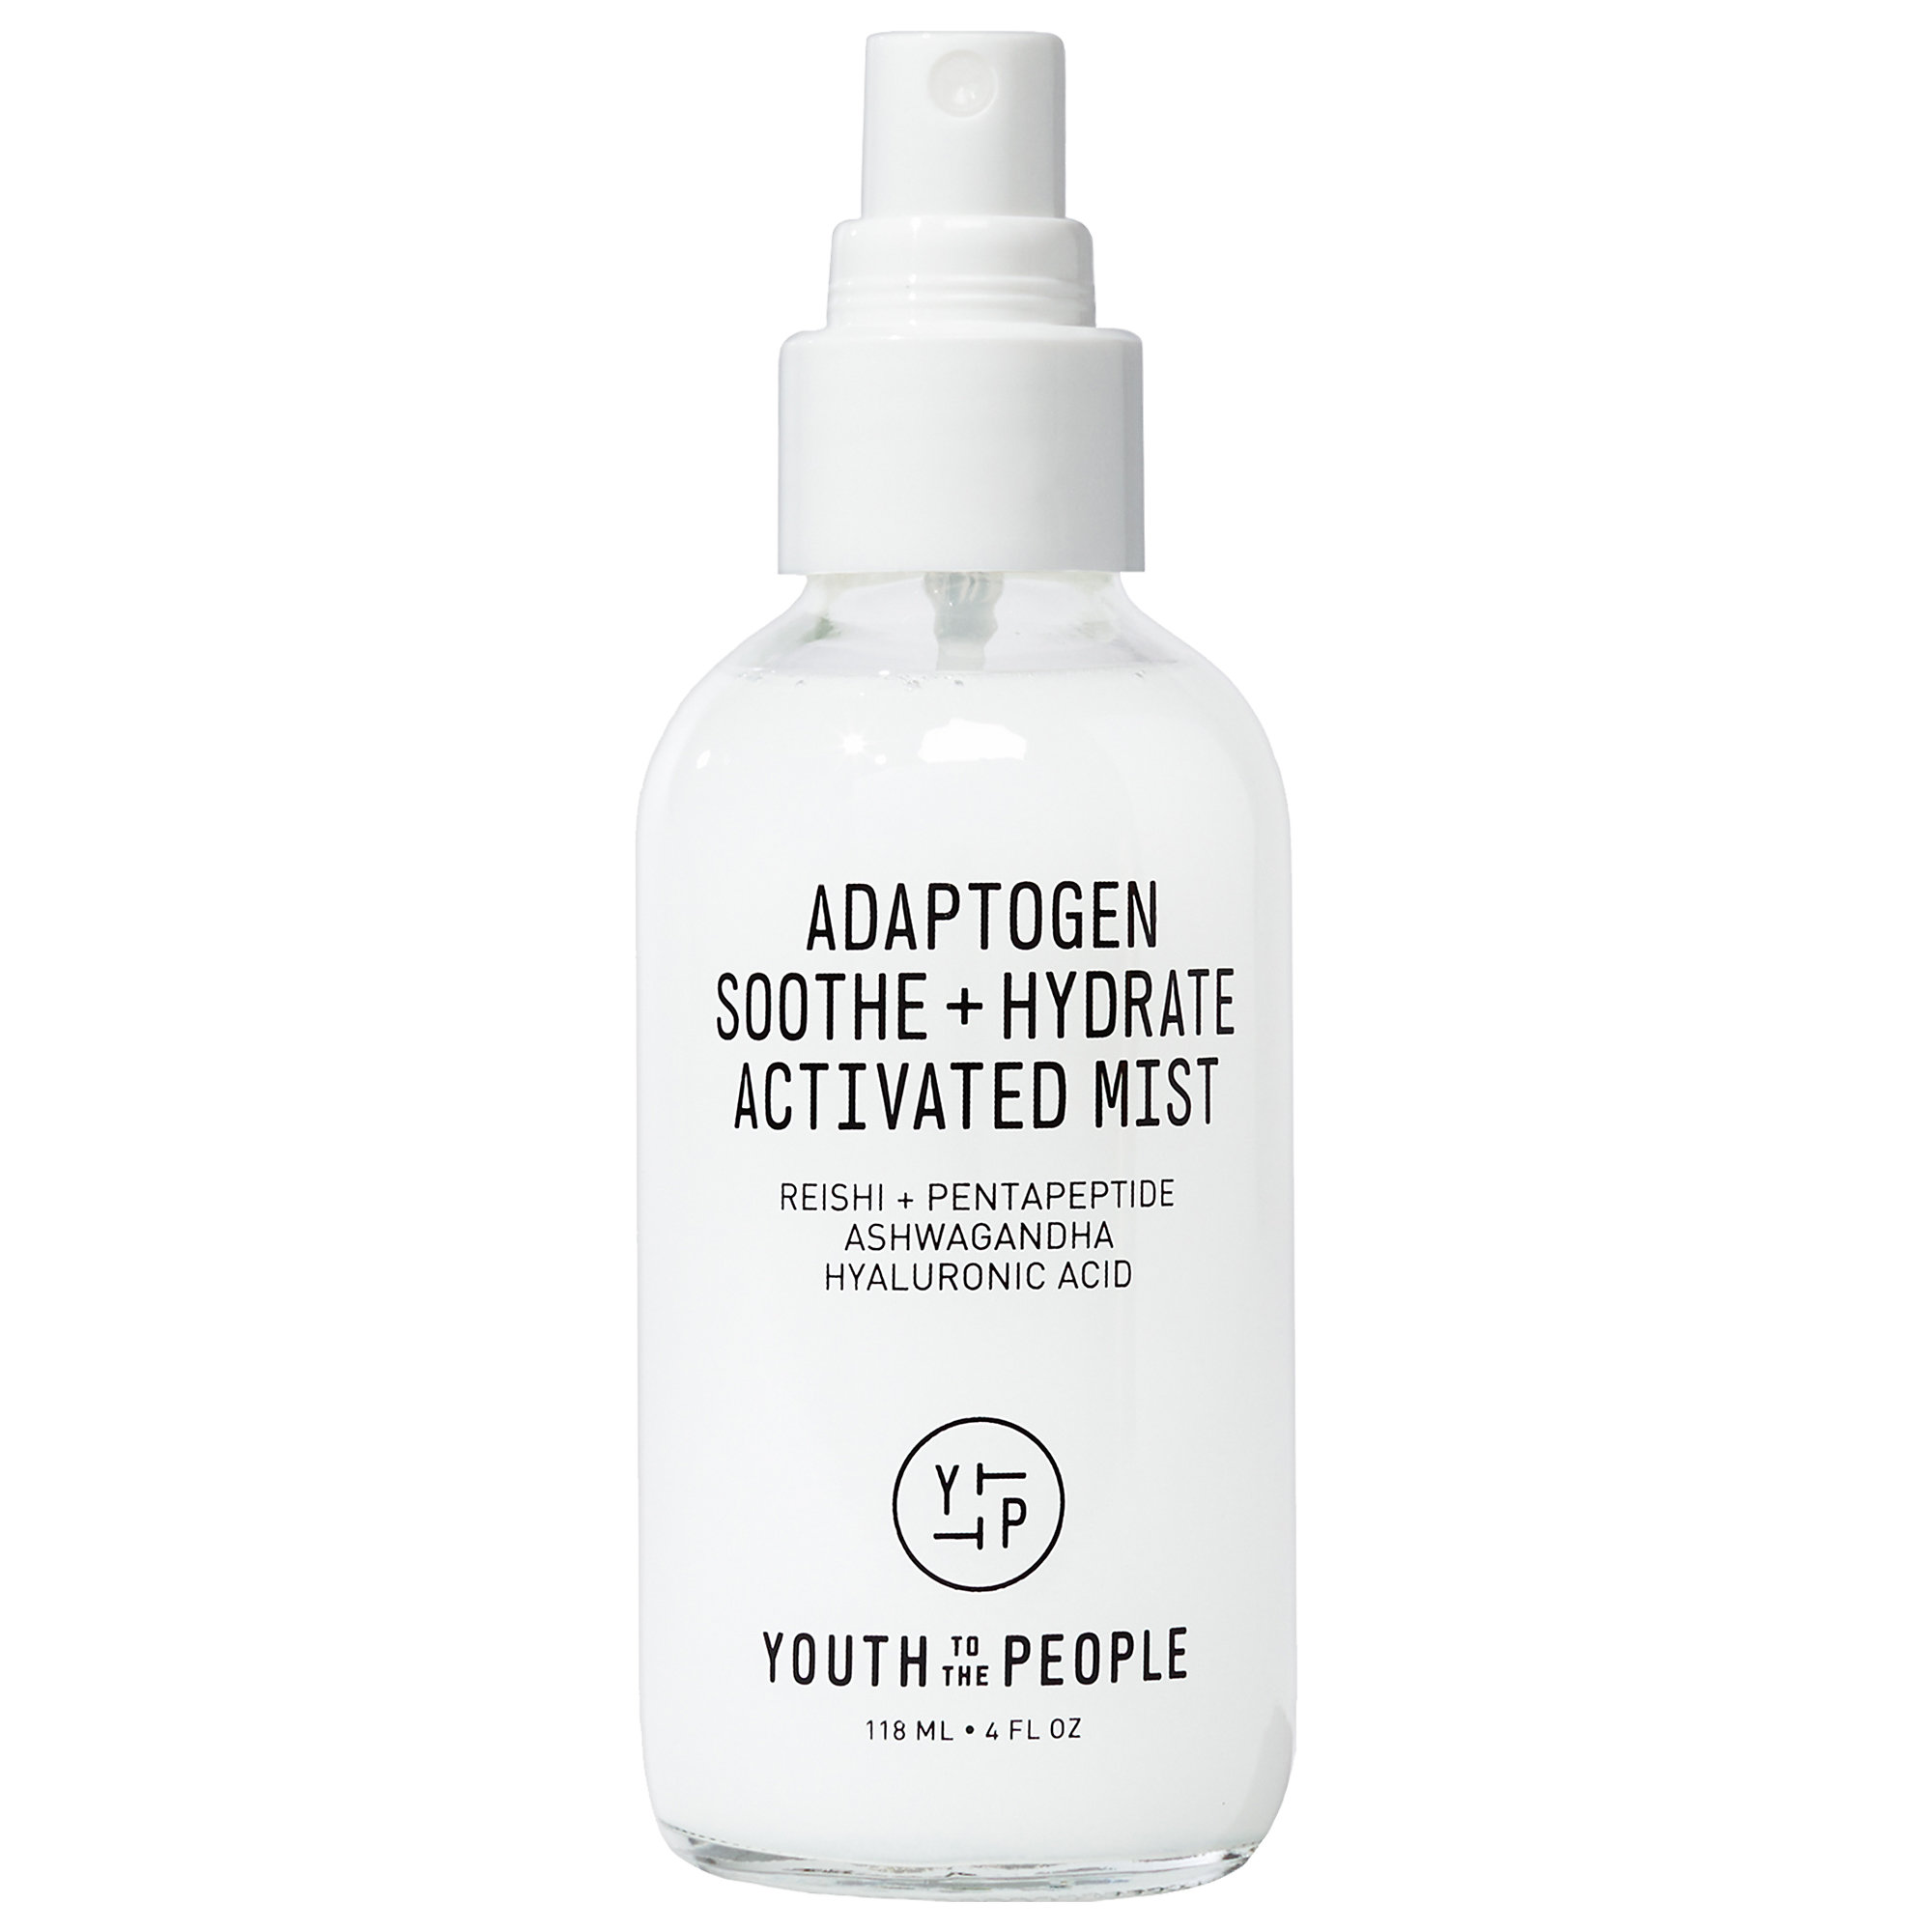 Youth to the People - Adaptogen Soothe + Hydrate Activated Mist with Reishi + Ashwagandha